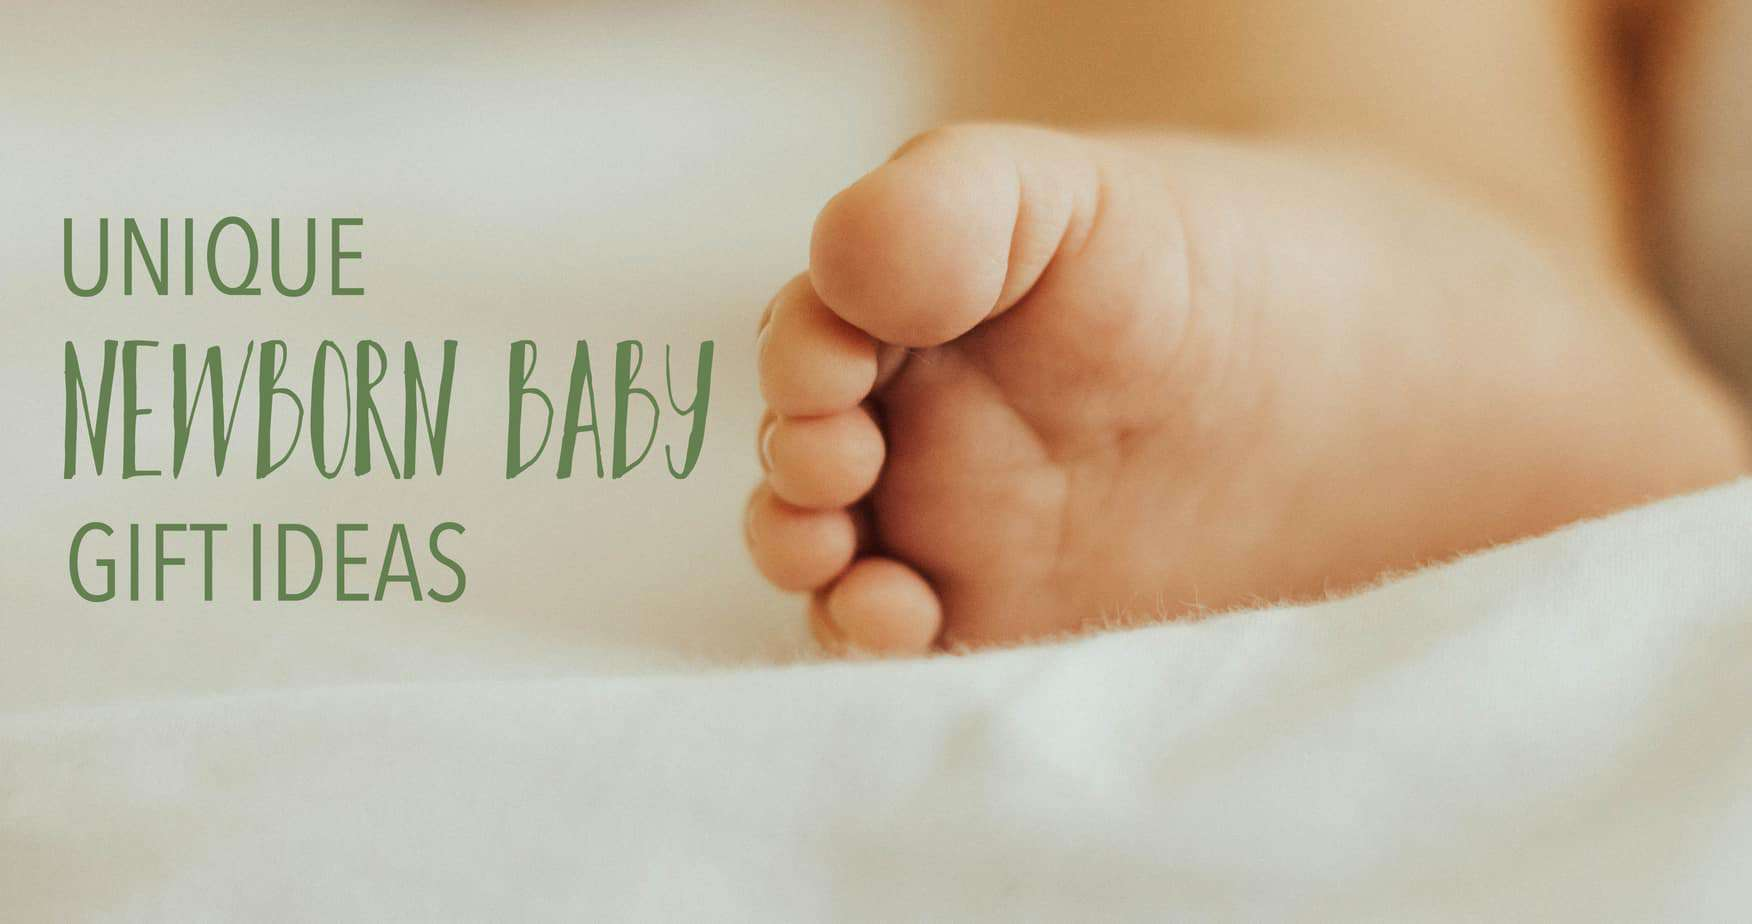 Unique Newborn Baby Gift Ideas – 10 Things Every Parent Will Love